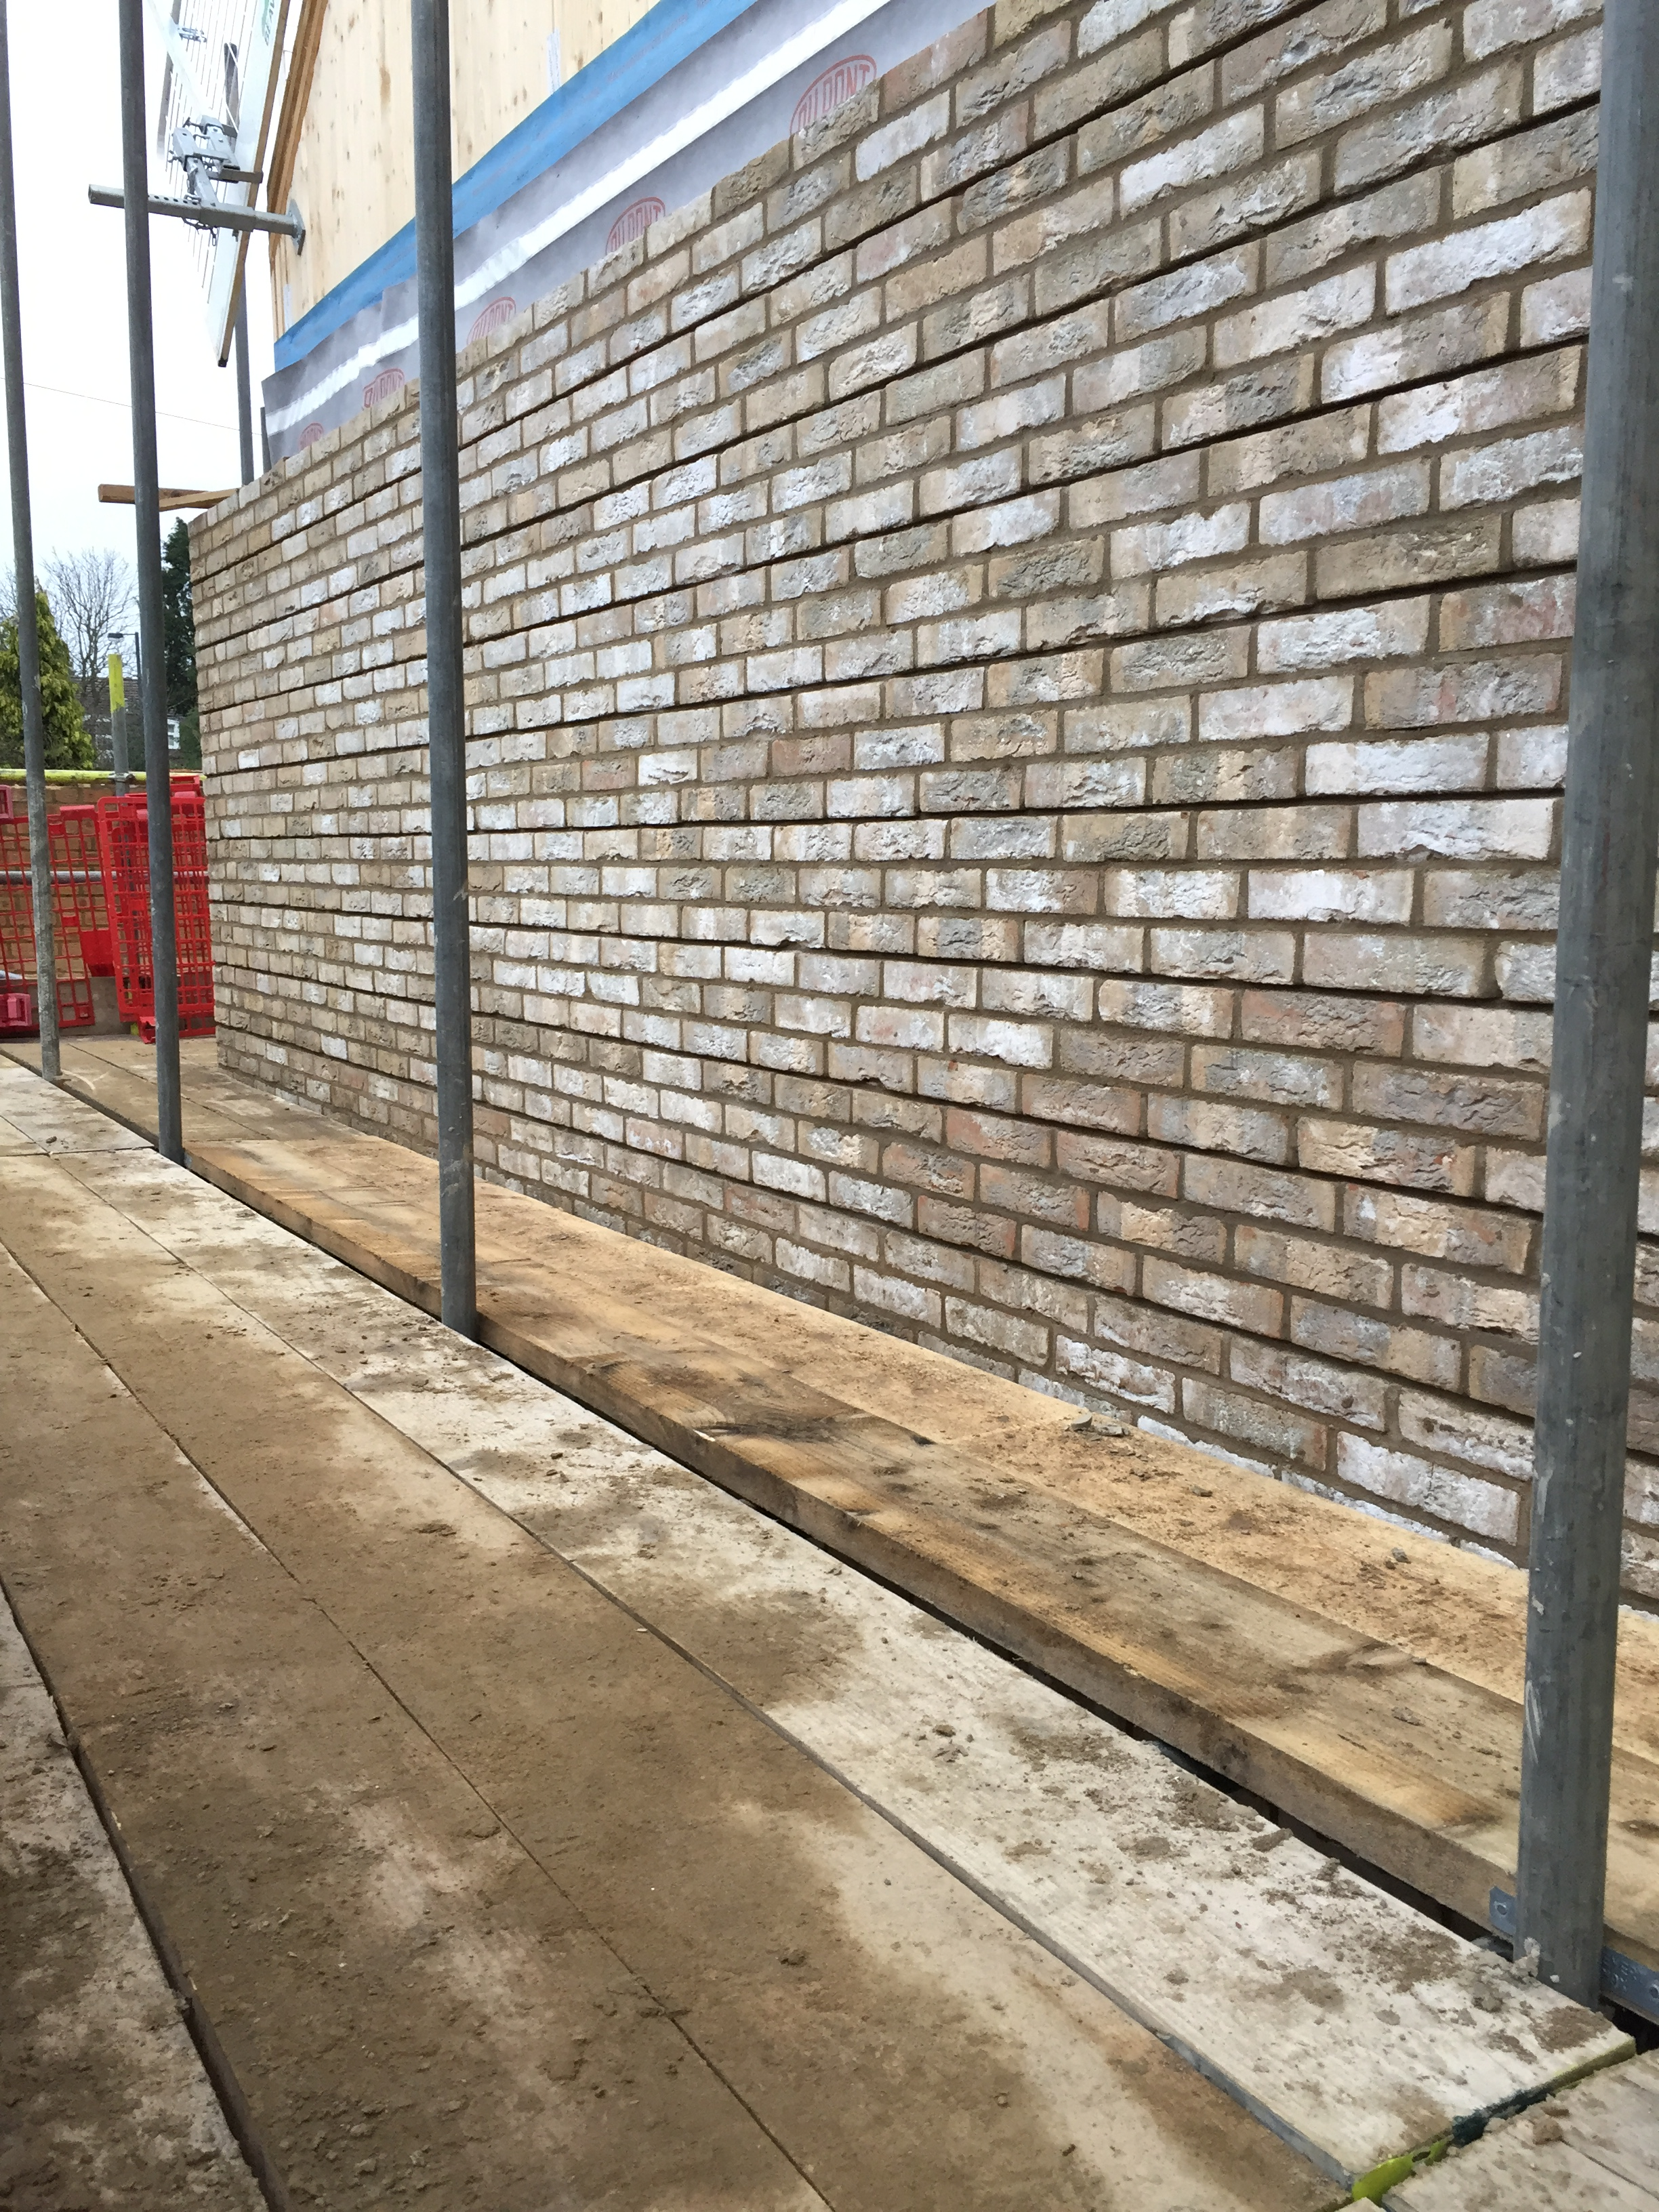 Wall brickwork